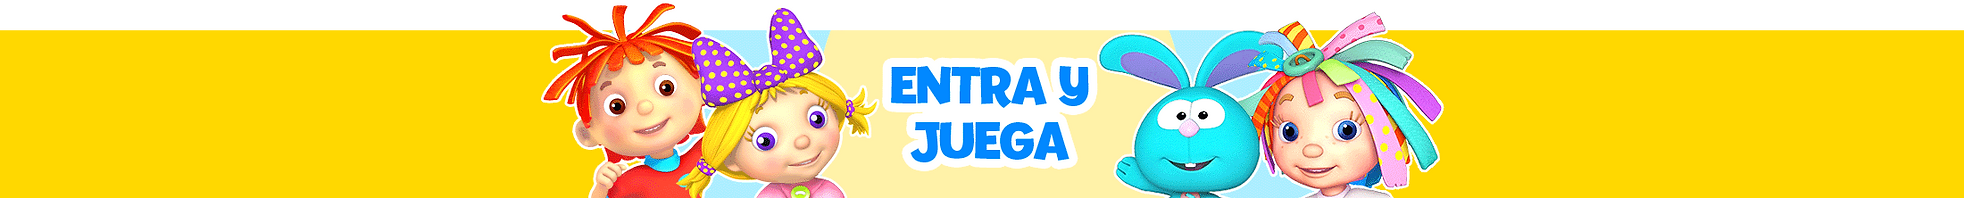 spanish - come-in-and-play-banner.png